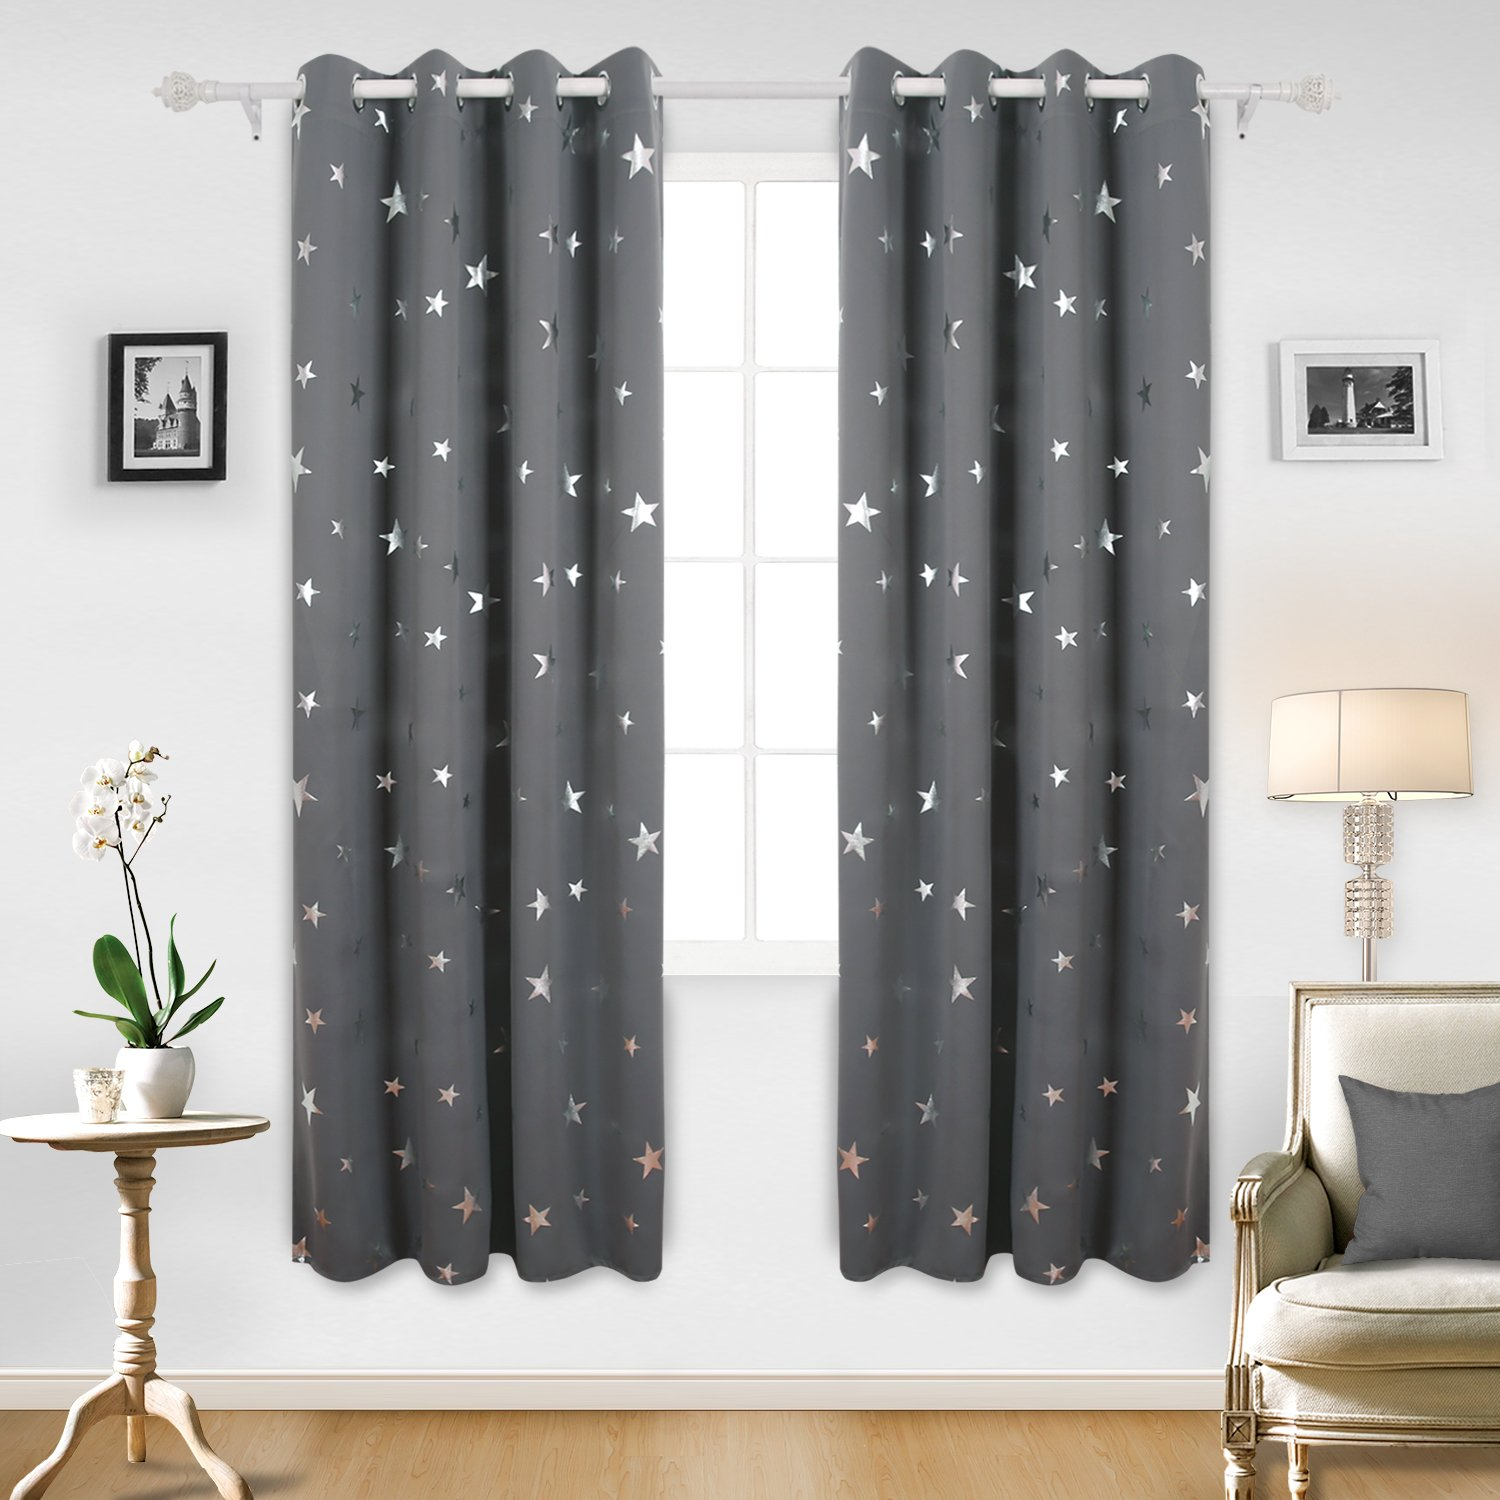 Deconovo Blackout Curtains Silver Star Print Solid Thermal Insulated Blackout  Curtains For Bedroom 52 X 84 Inch Grey One Pair